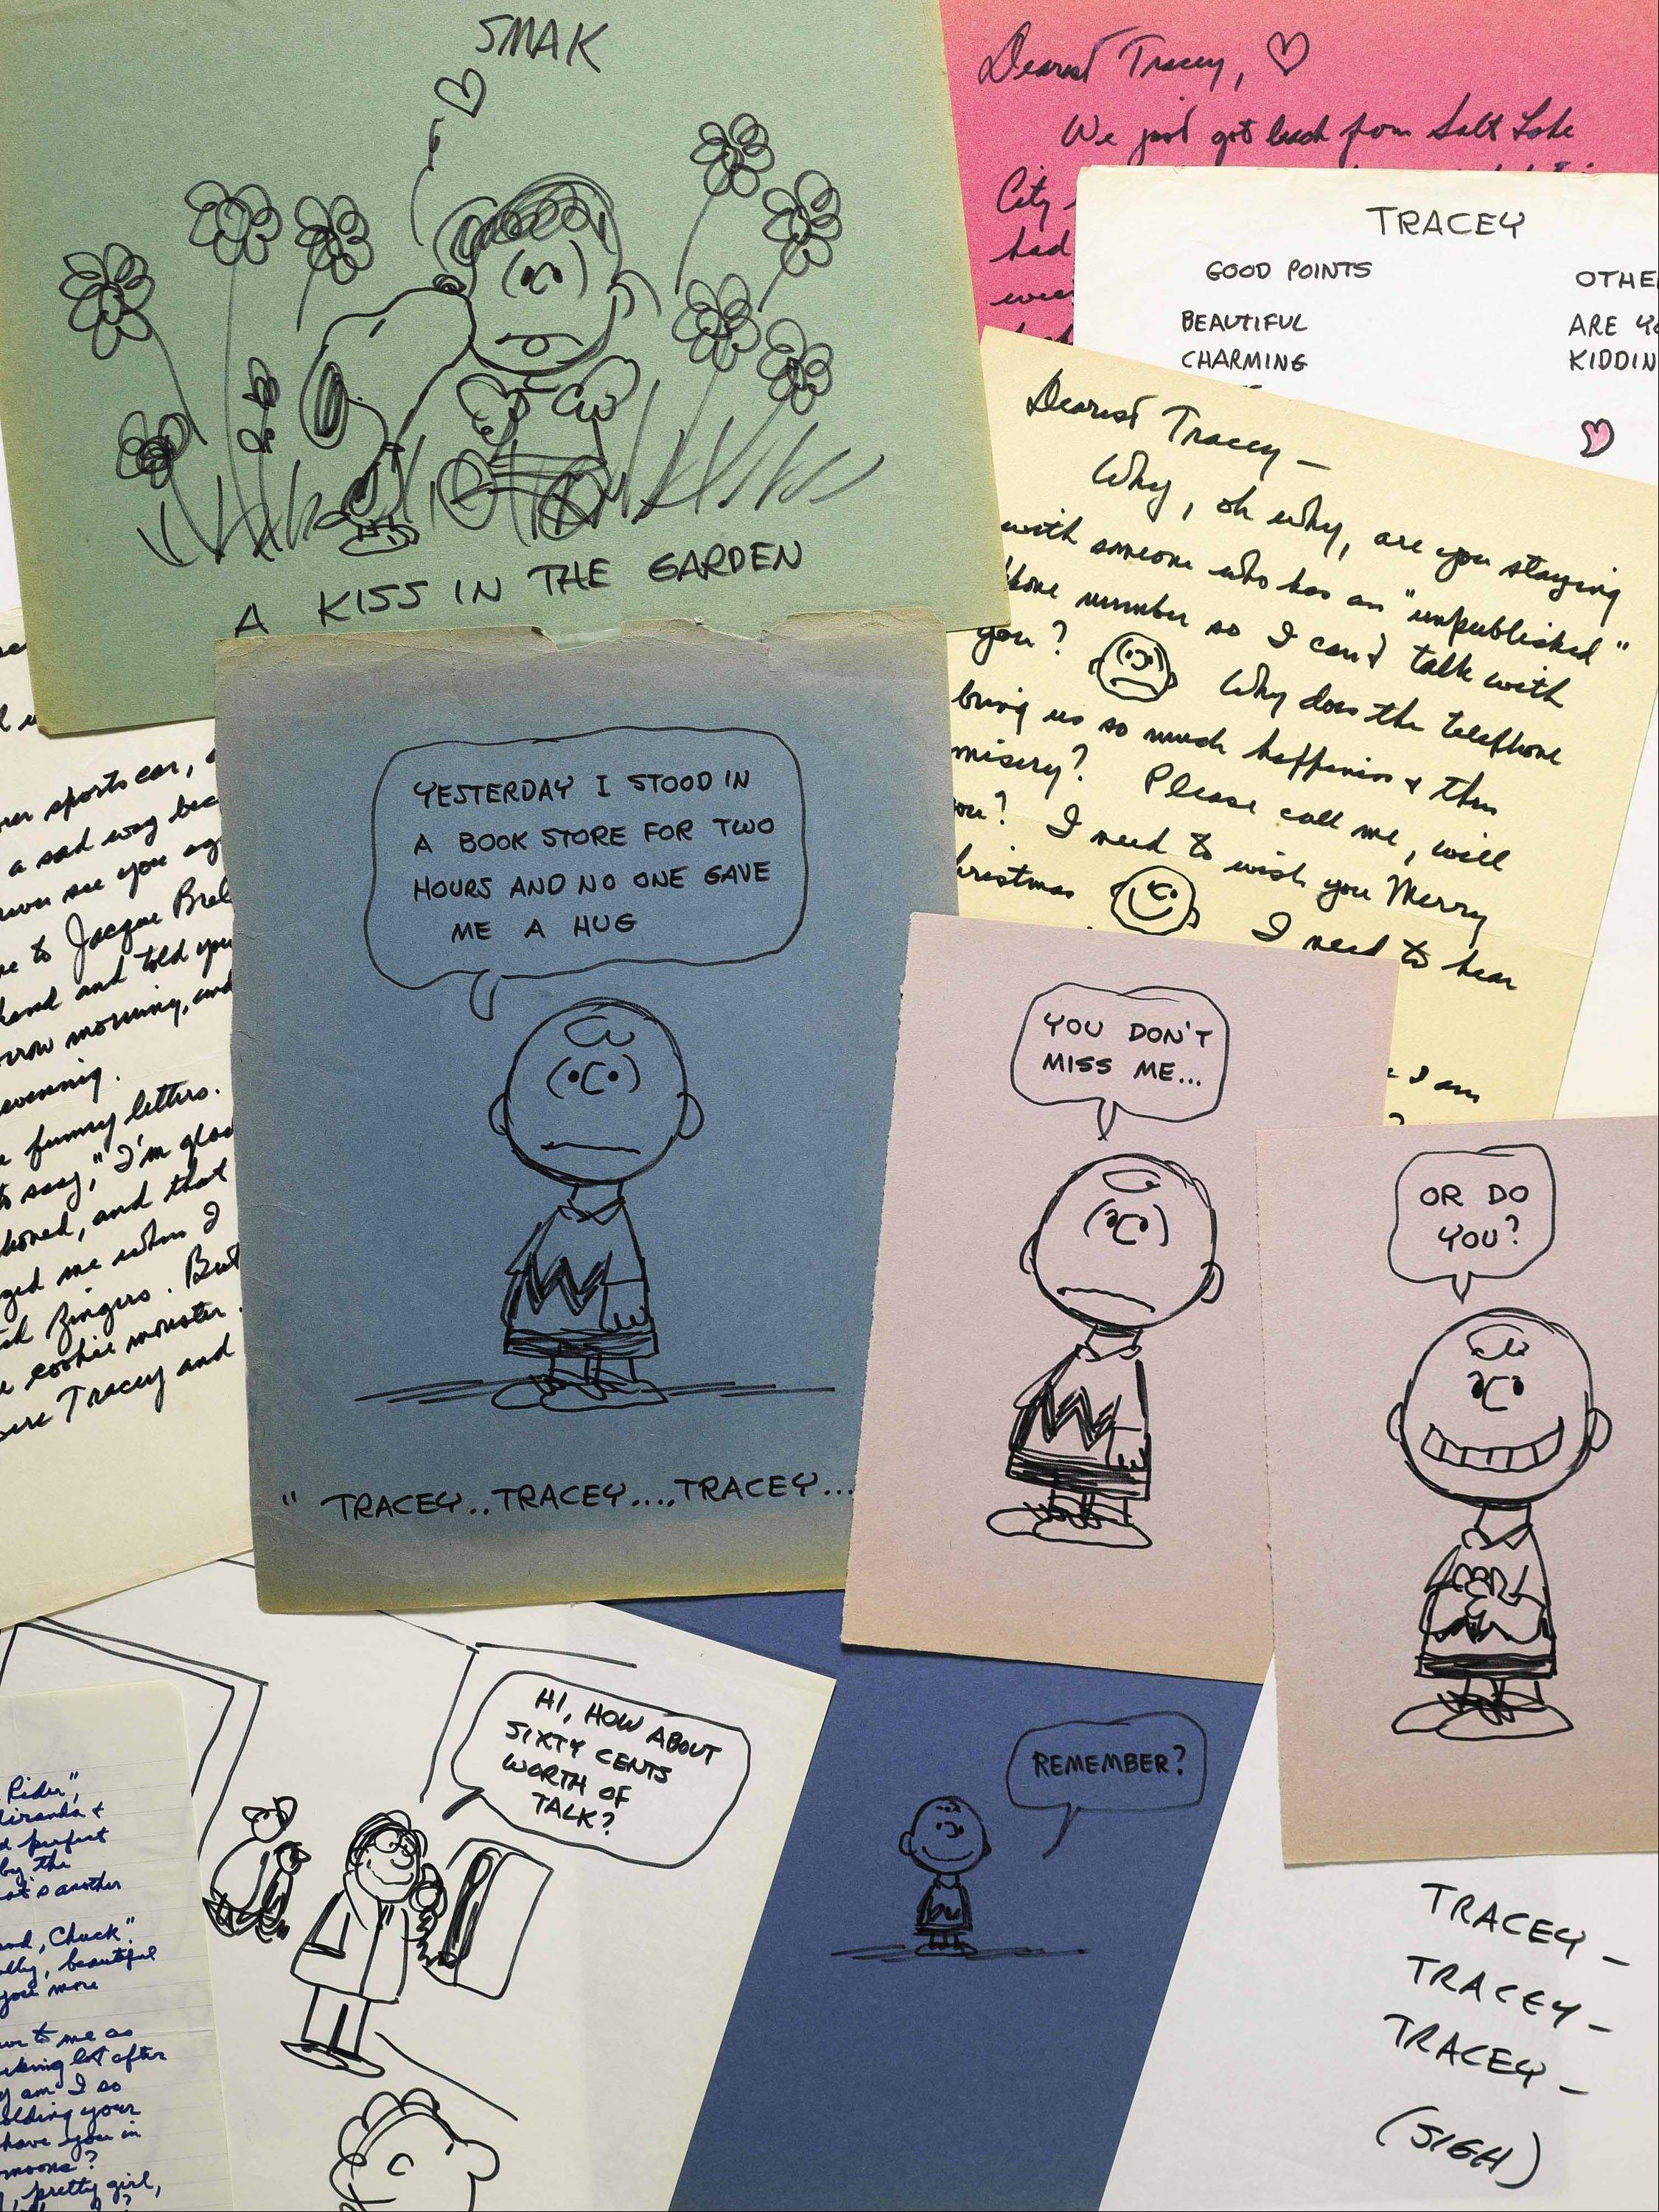 Some of the romantic letters and drawings the late Peanuts creator Charles Schulz sent to a young woman 23 years his junior, who infatuated him. The love notes from 1970-1971 are being offered for sale at Sotheby�s in New York by the family of Tracey Claudius.